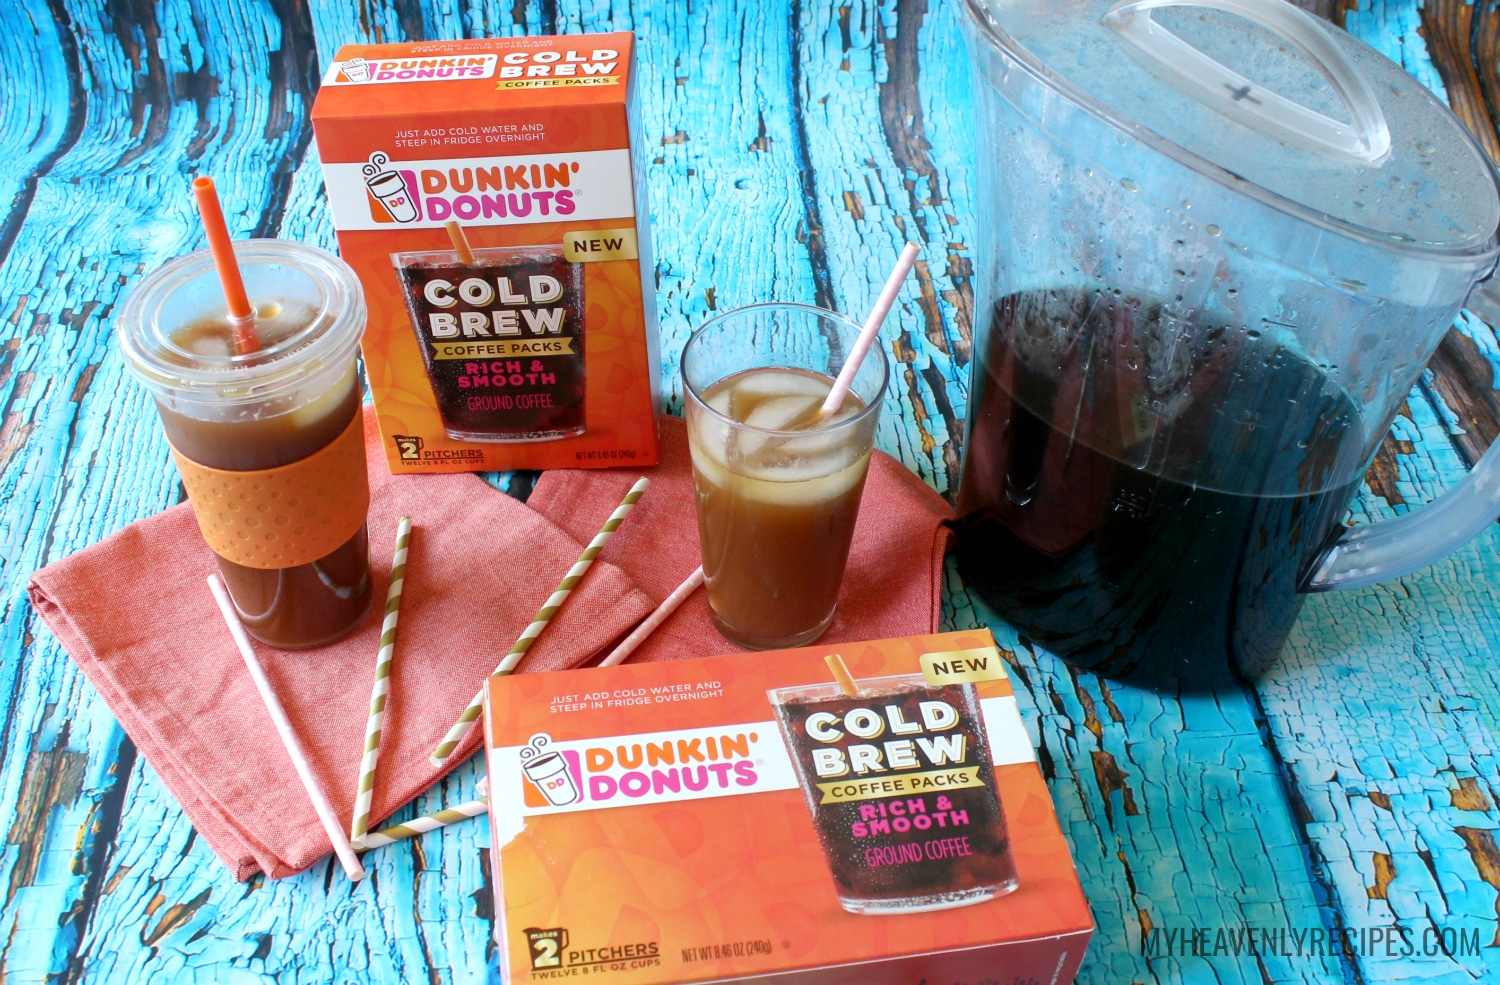 Dunkin Donuts Cold Brew Coffee can now be enjoyed at home with Cold Brew Coffee Packs.